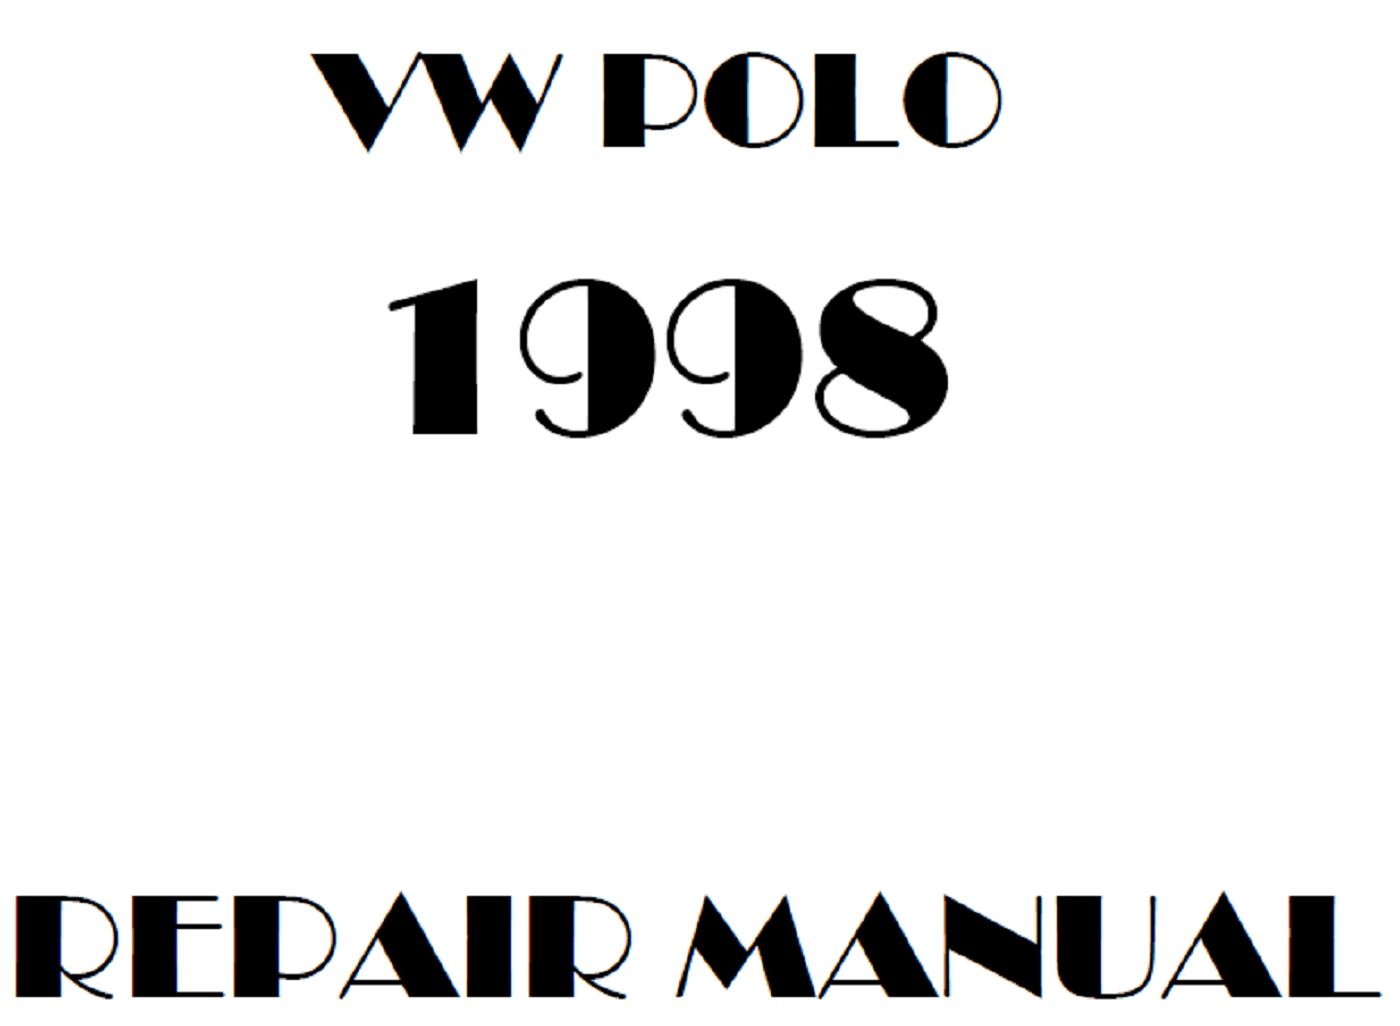 1998 Volkswagen Polo repair manual